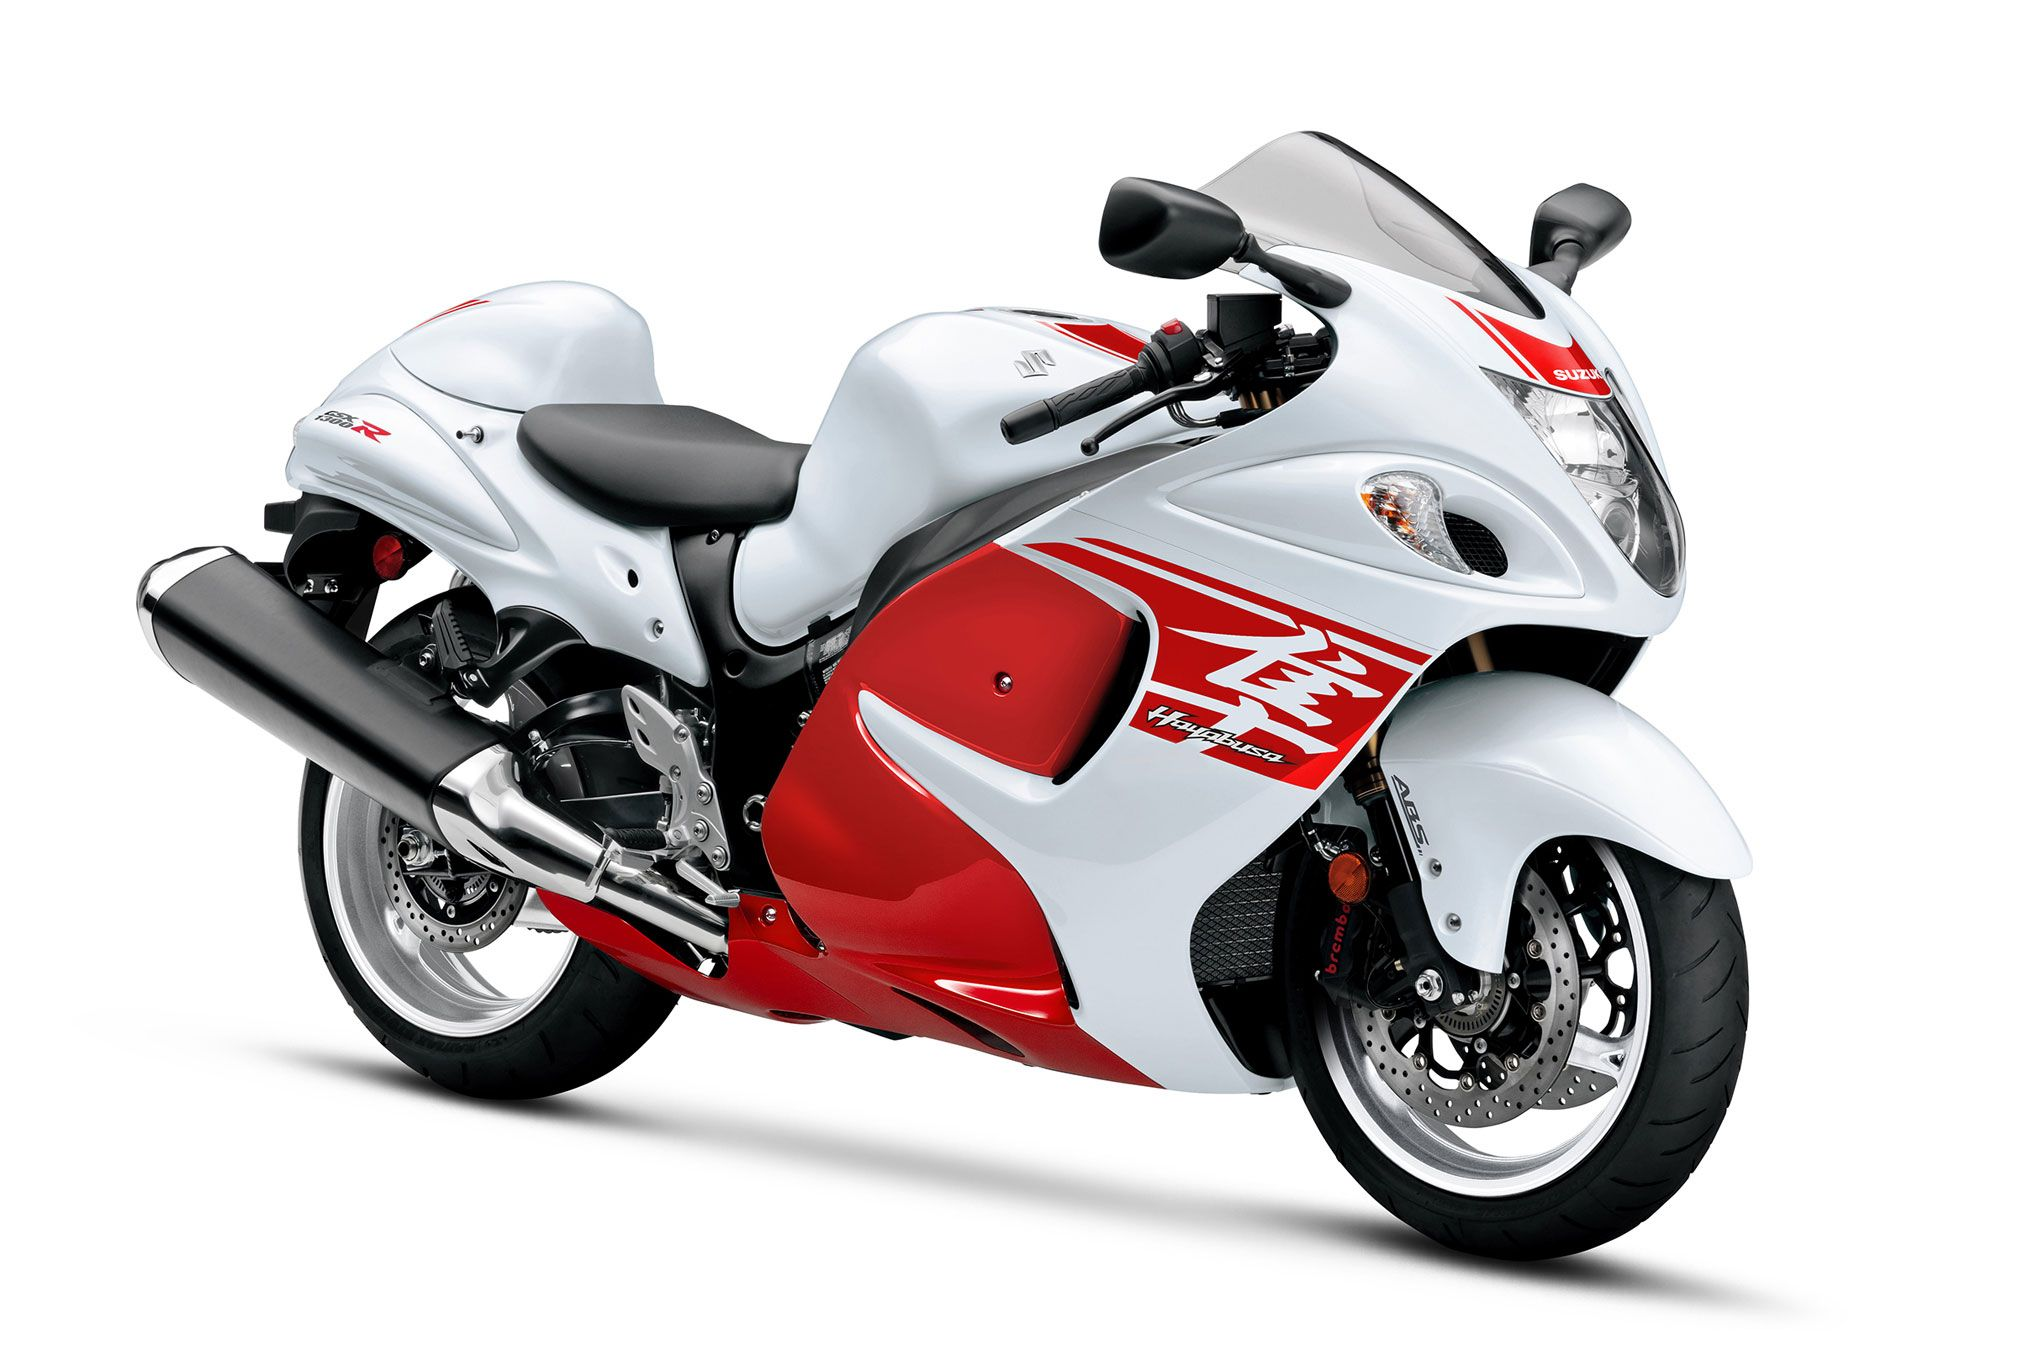 Marvelous Charmant 2018 Suzuki Hayabusa Review: A PERFORMANCE LEGEND. 2018 Suzuki  Hayabusa Onu2026 #2018MotorcycleModels